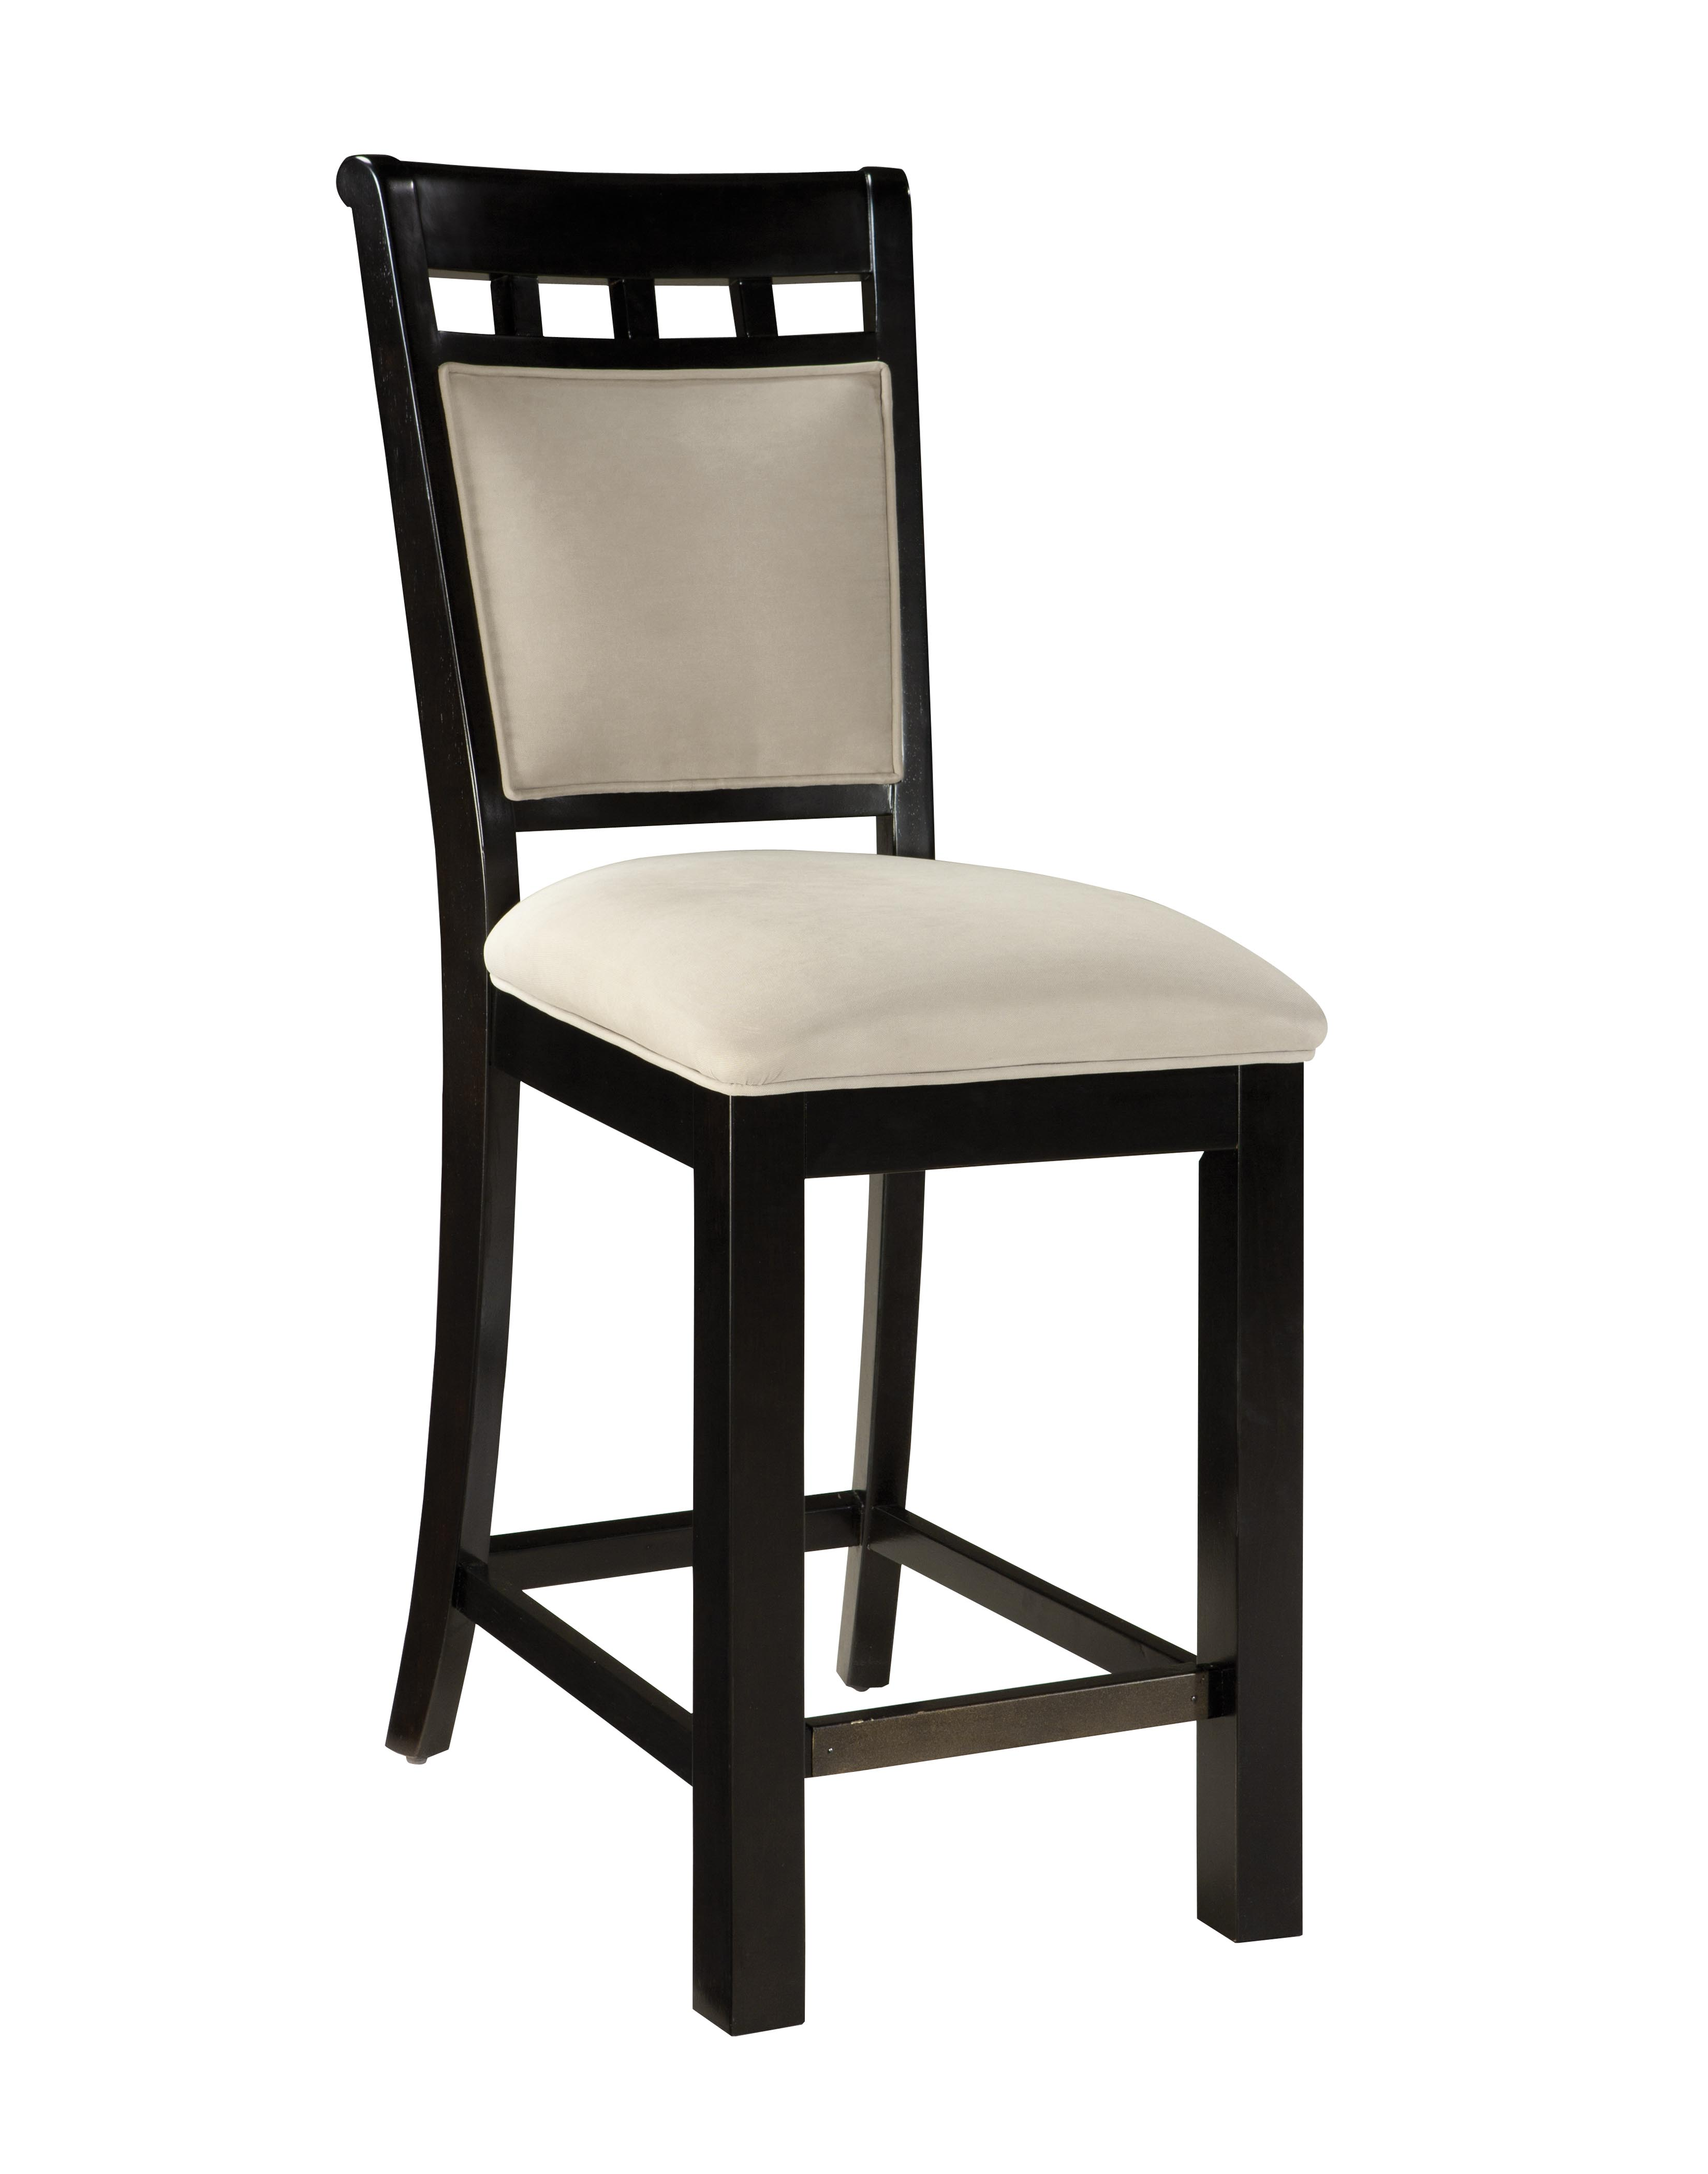 1fedb792817a 2 Gateway White Brown Chicory Wood Fabric Upholstery Barstools Click To  Enlarge ...